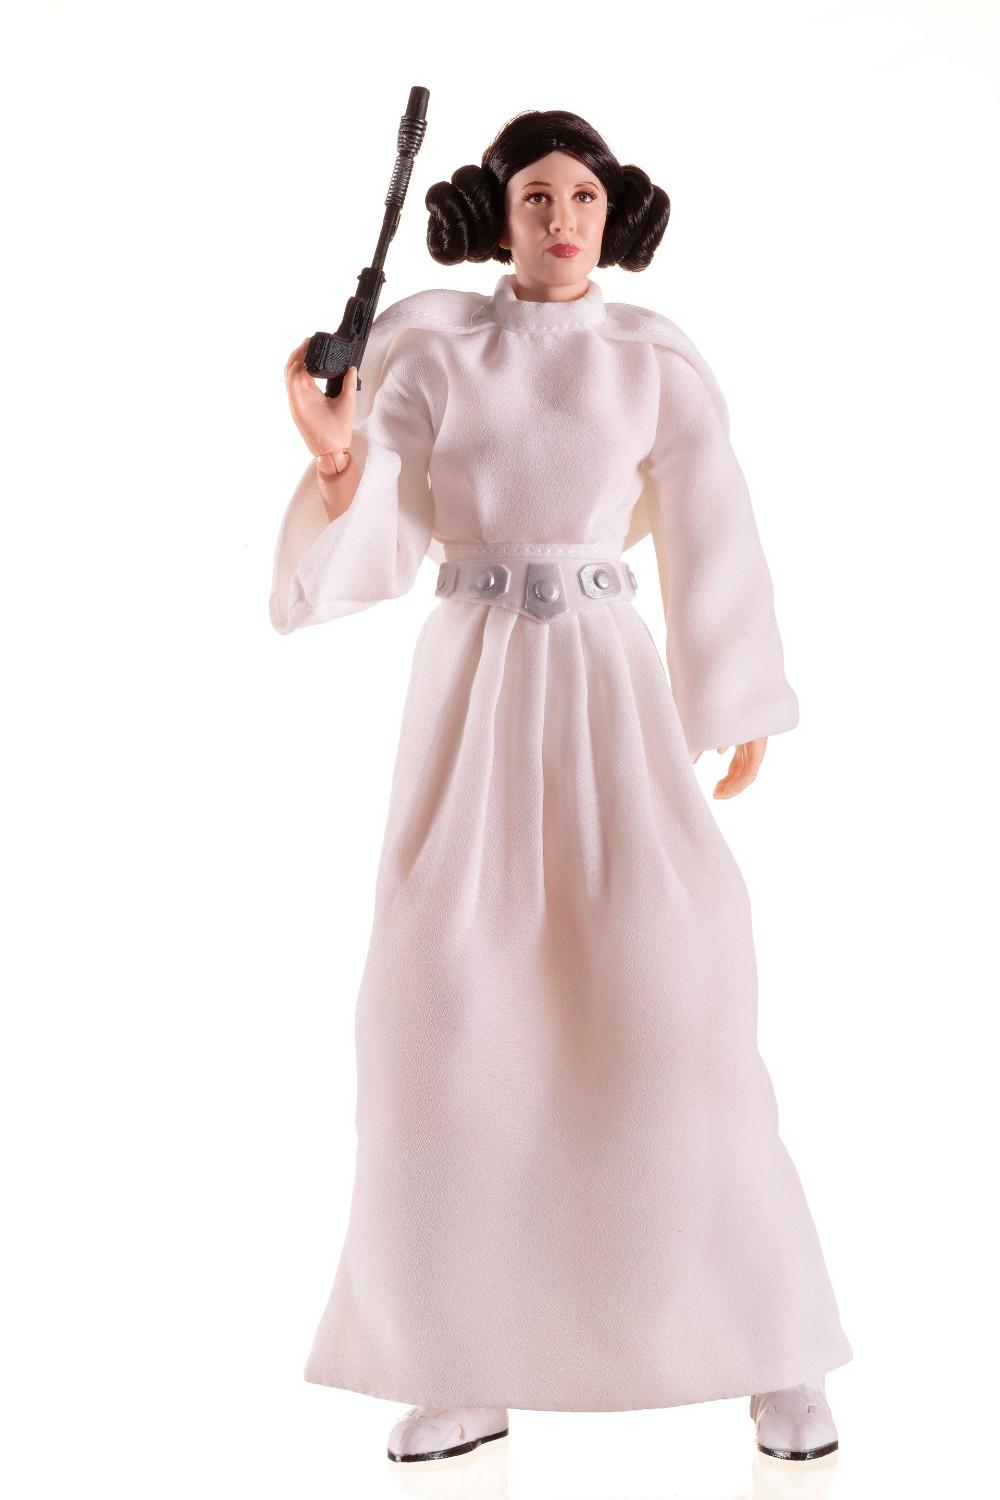 Princess Leia Organa Elite Series Doll, Star Wars: A New Hope, 2017, Disney.